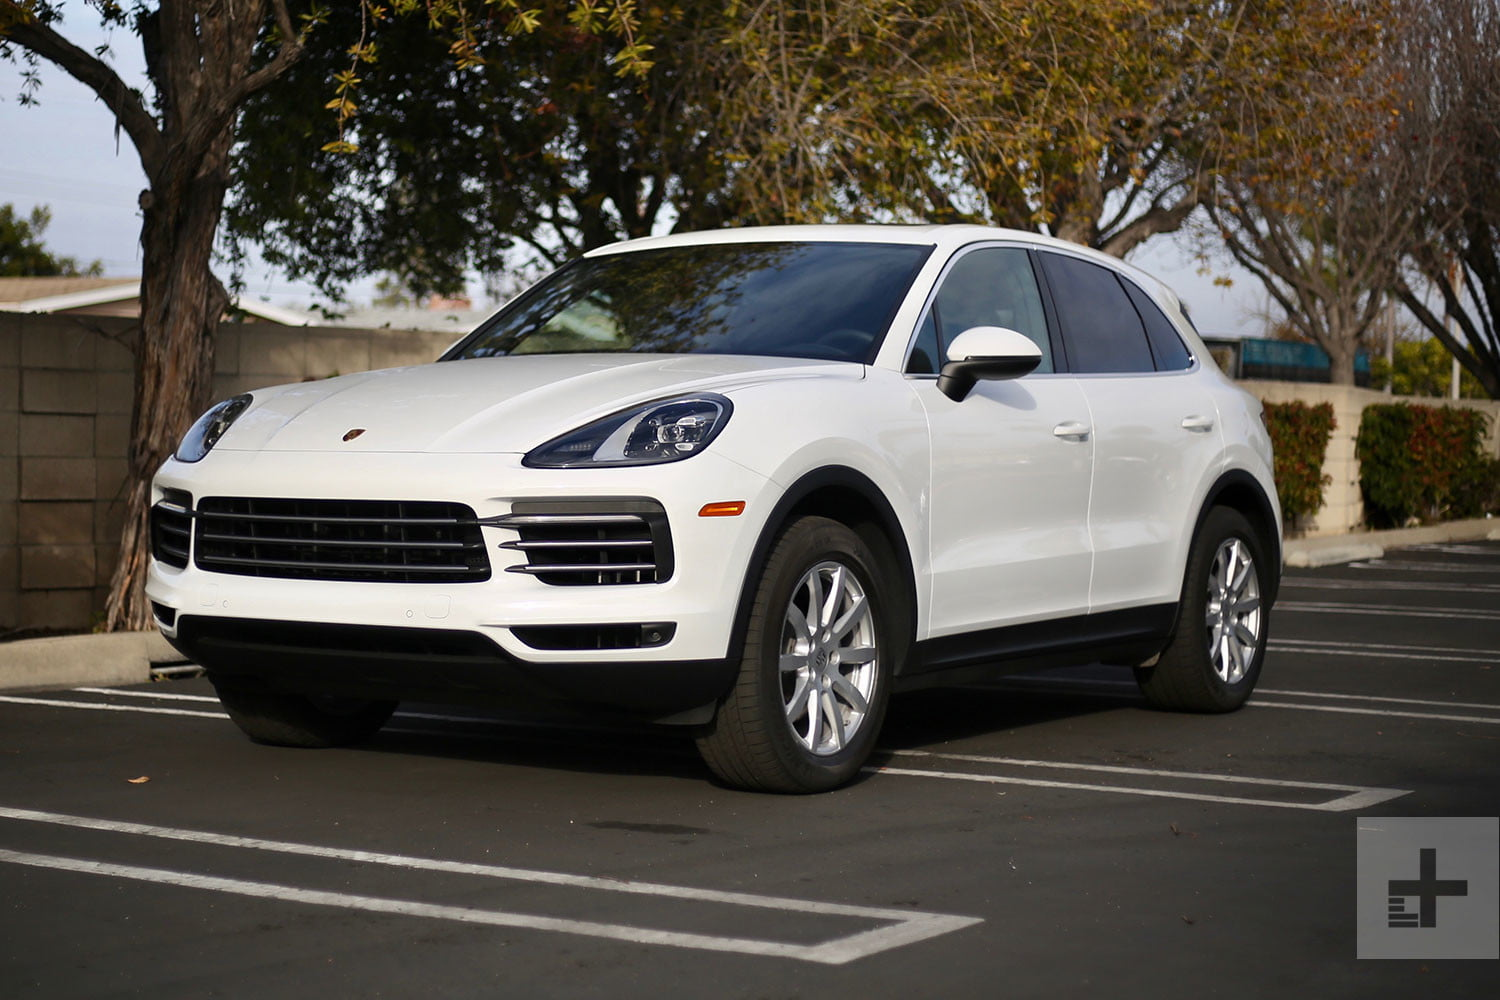 2019 Porsche Cayenne Review | Pictures, Specs, Pricing